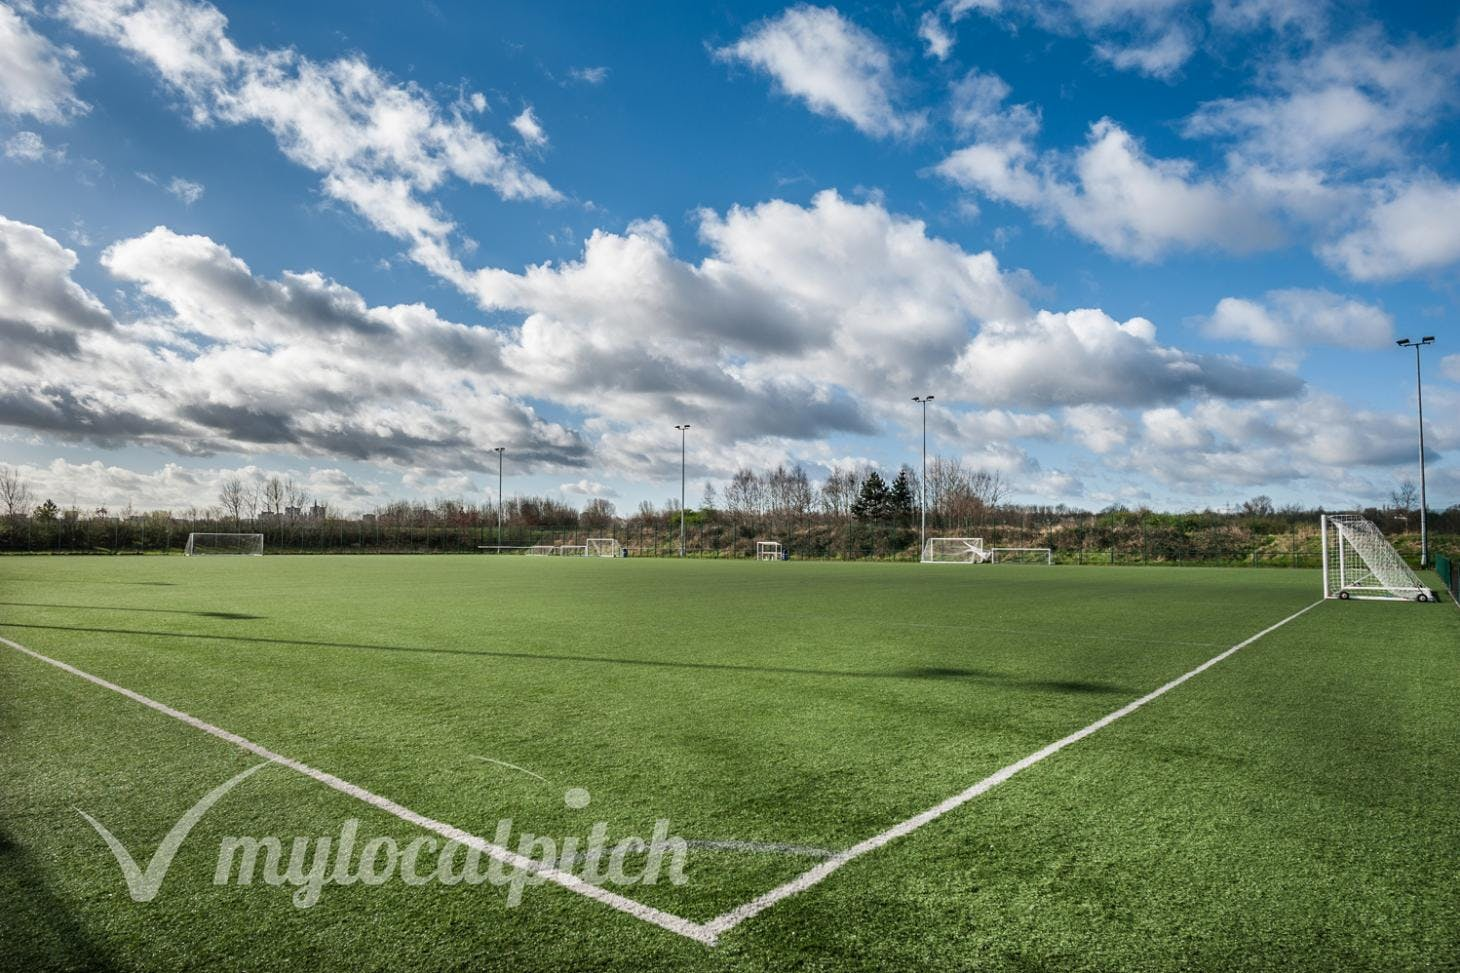 Salford Sports Village Union | 3G Astroturf rugby pitch